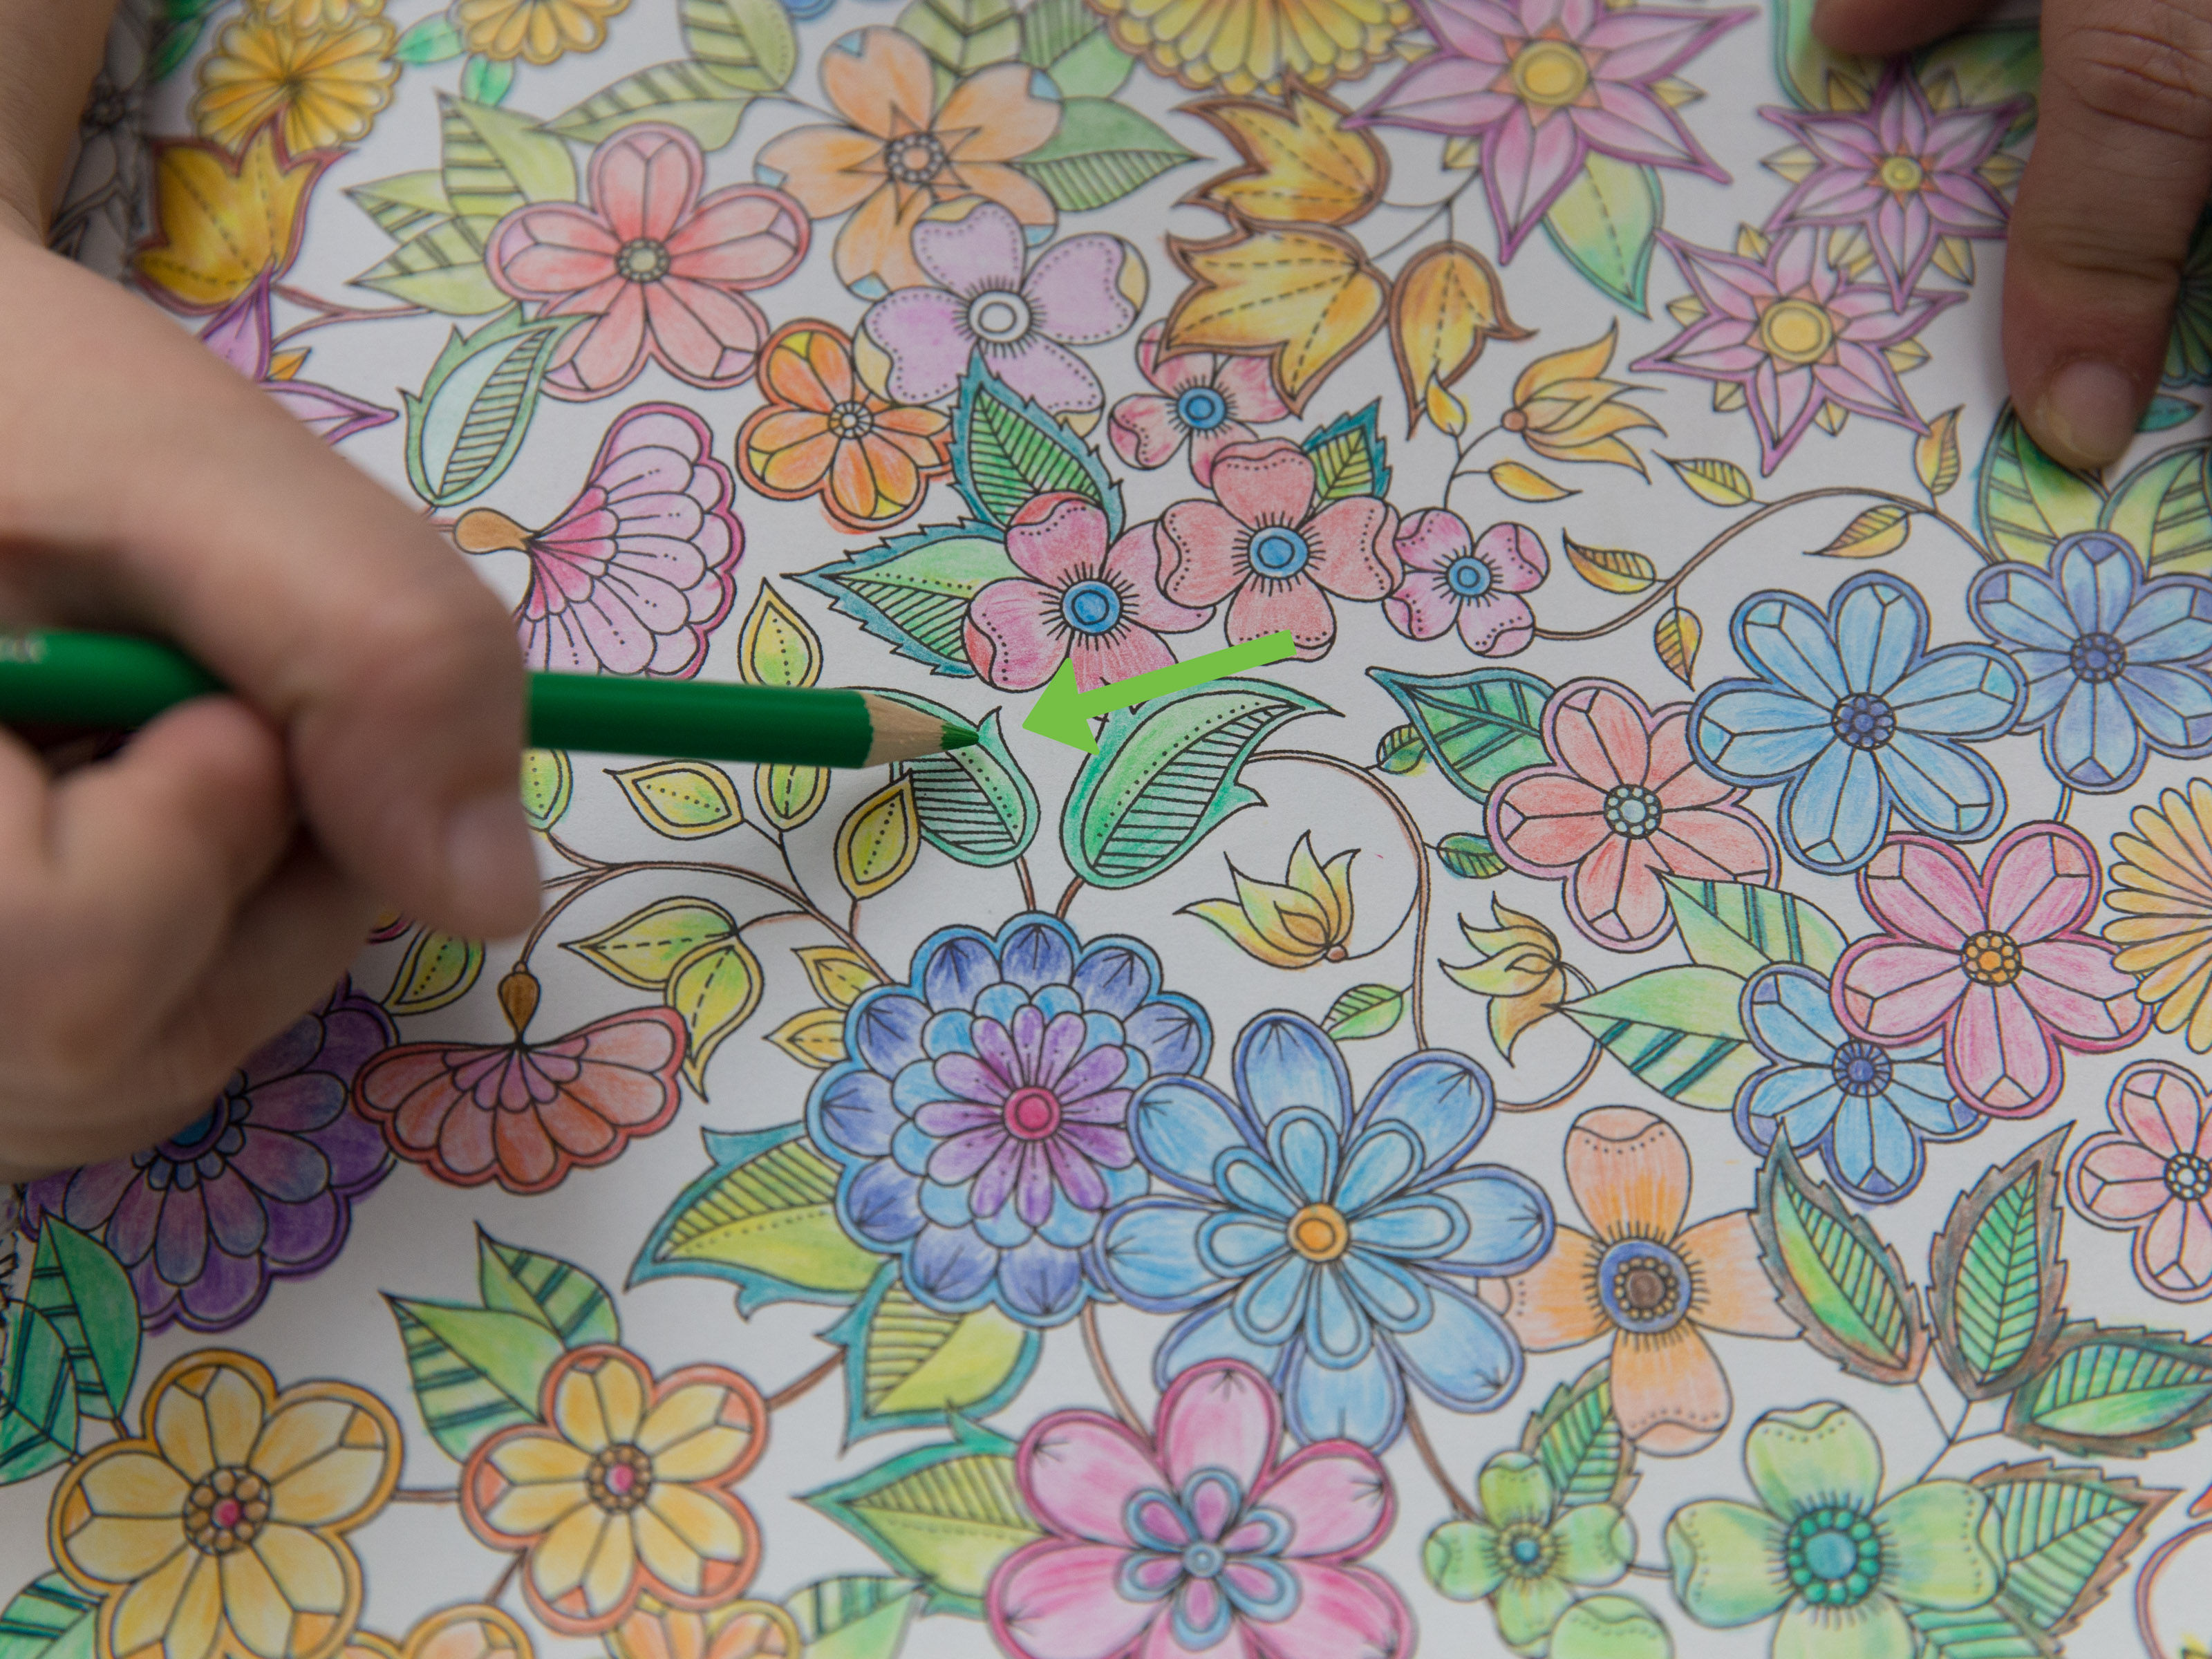 Colorful coloring book for adults download - Colorful Coloring Book For Adults Download 74